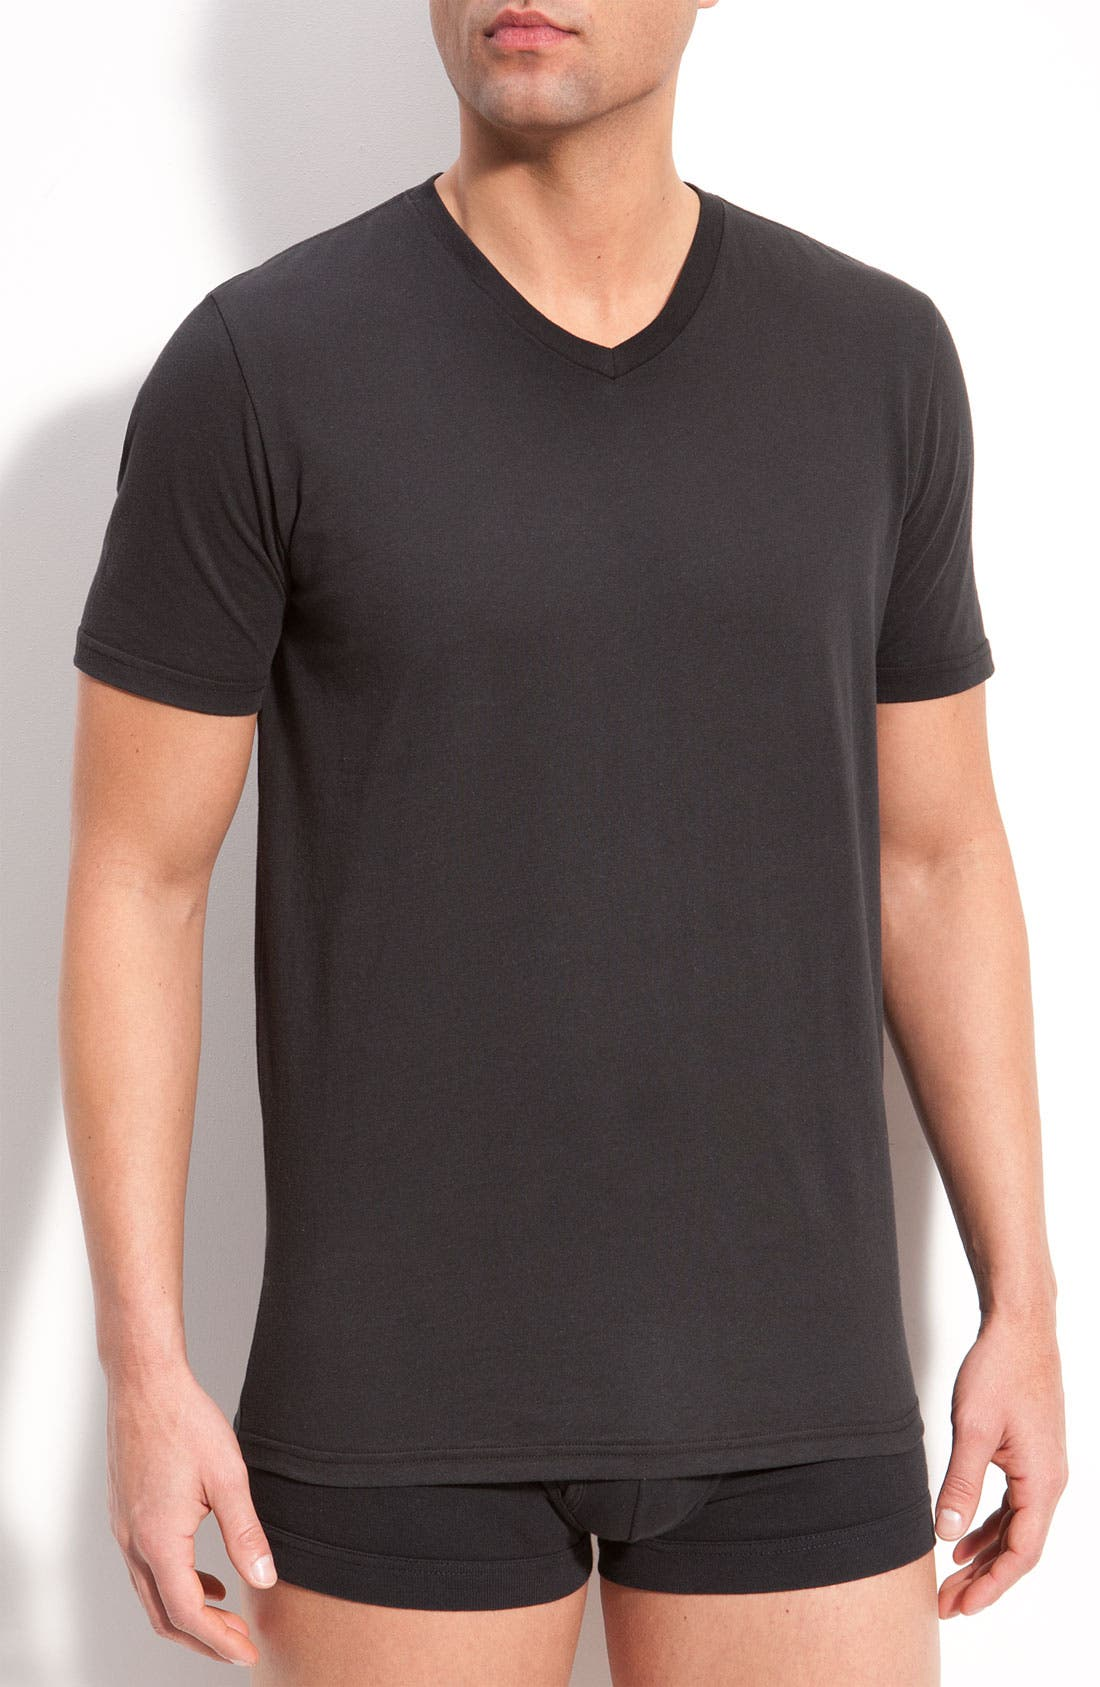 Alternate Image 1 Selected - Michael Kors V-Neck Shirt (3-Pack)